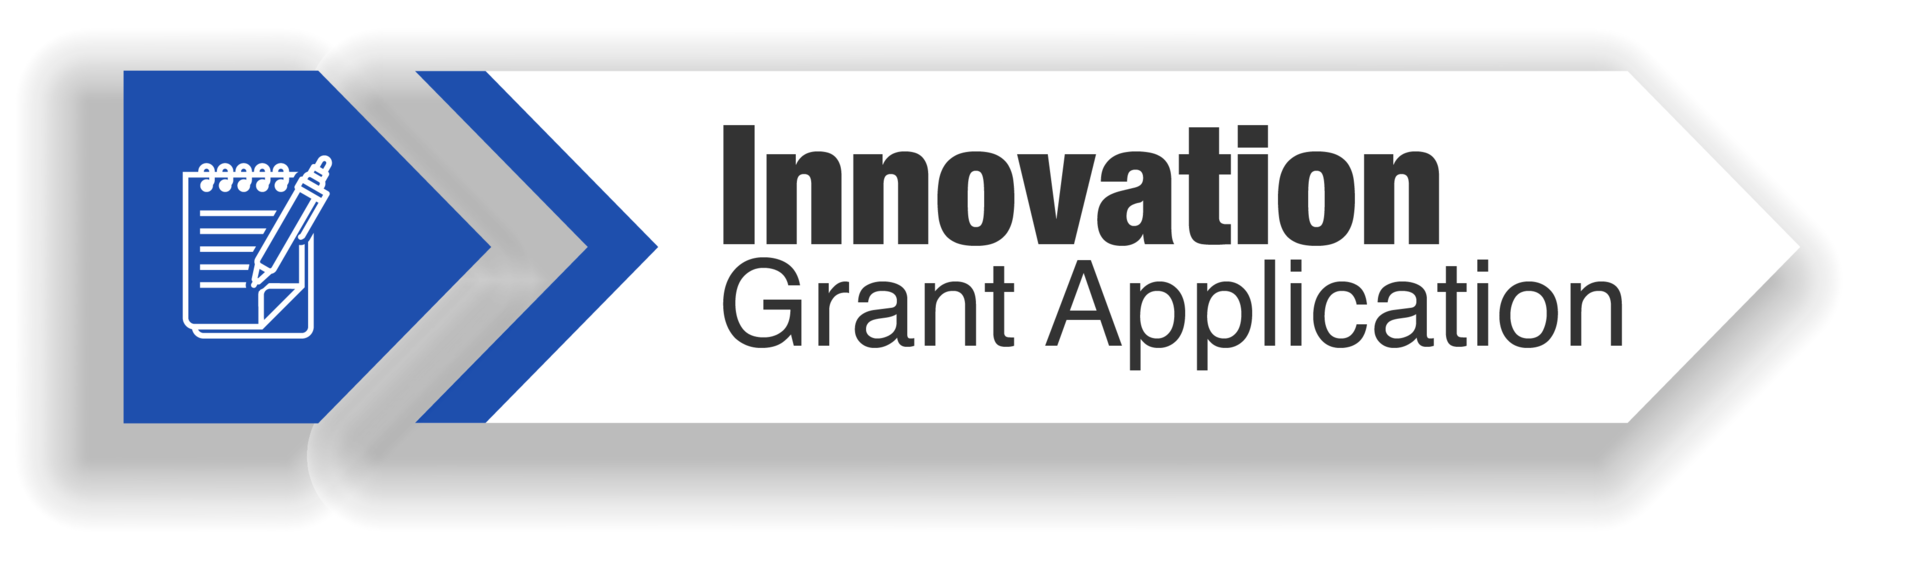 Innovation Grant Application